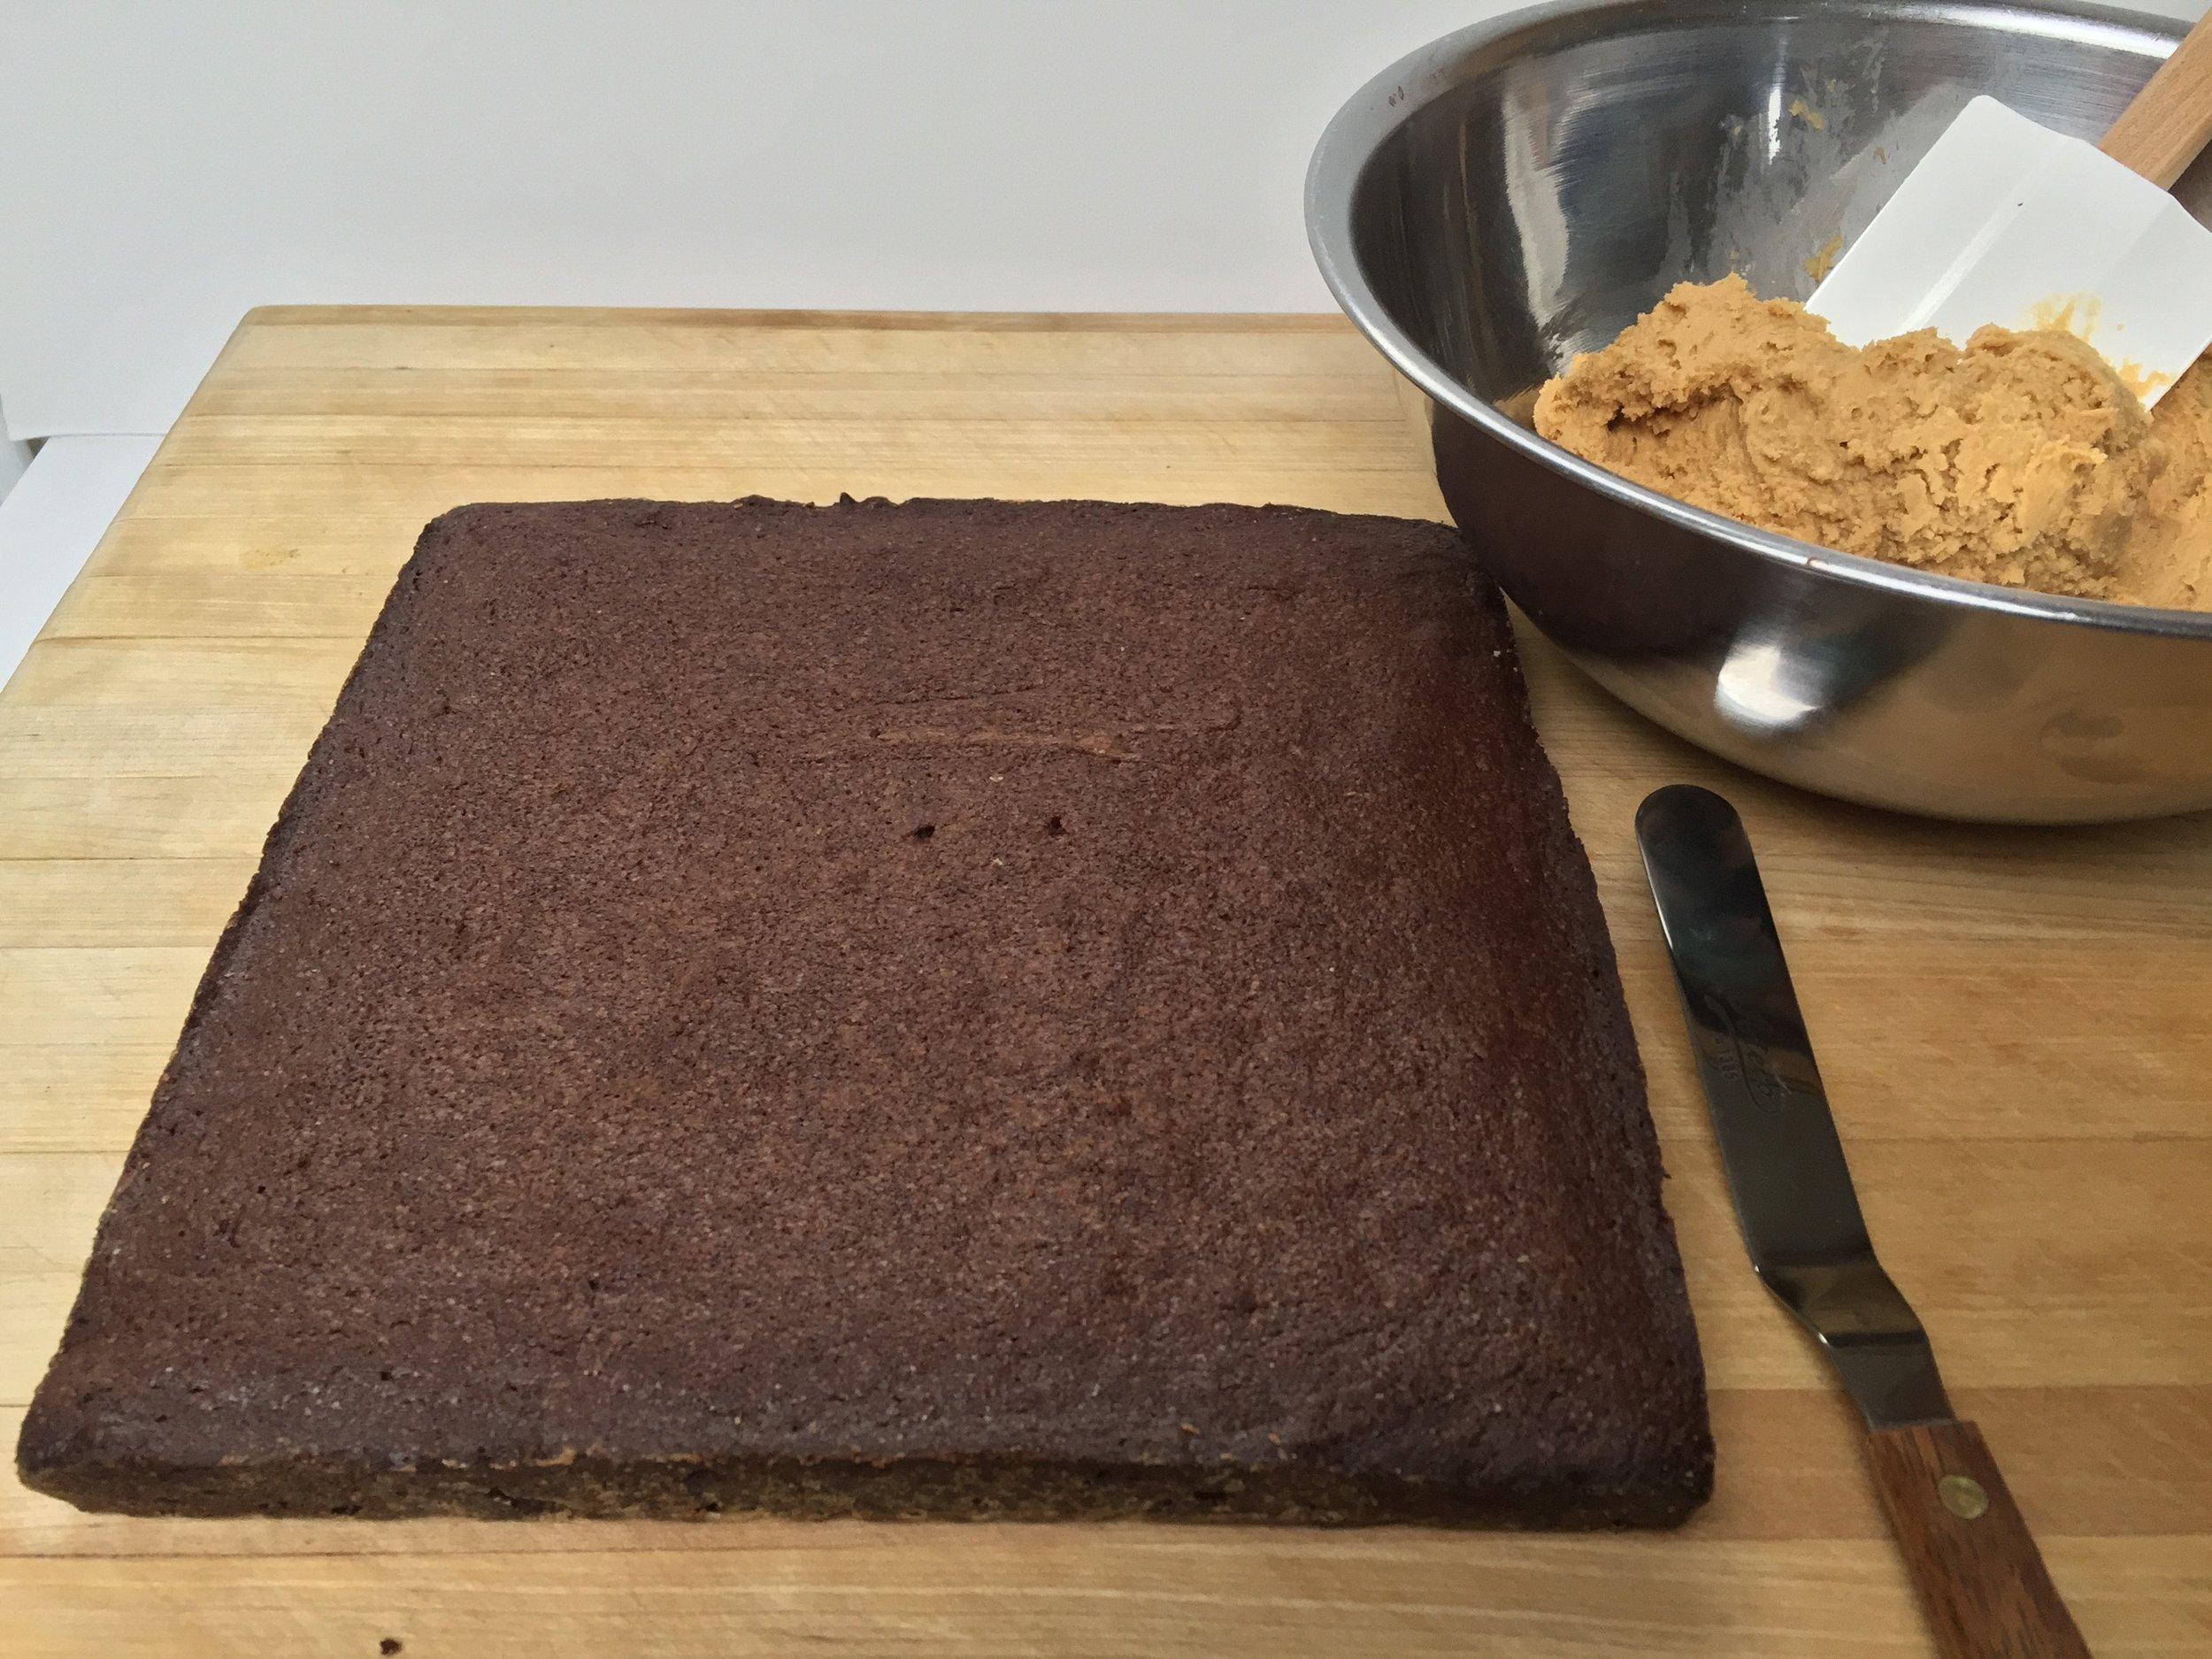 Brownie awaiting frosting.